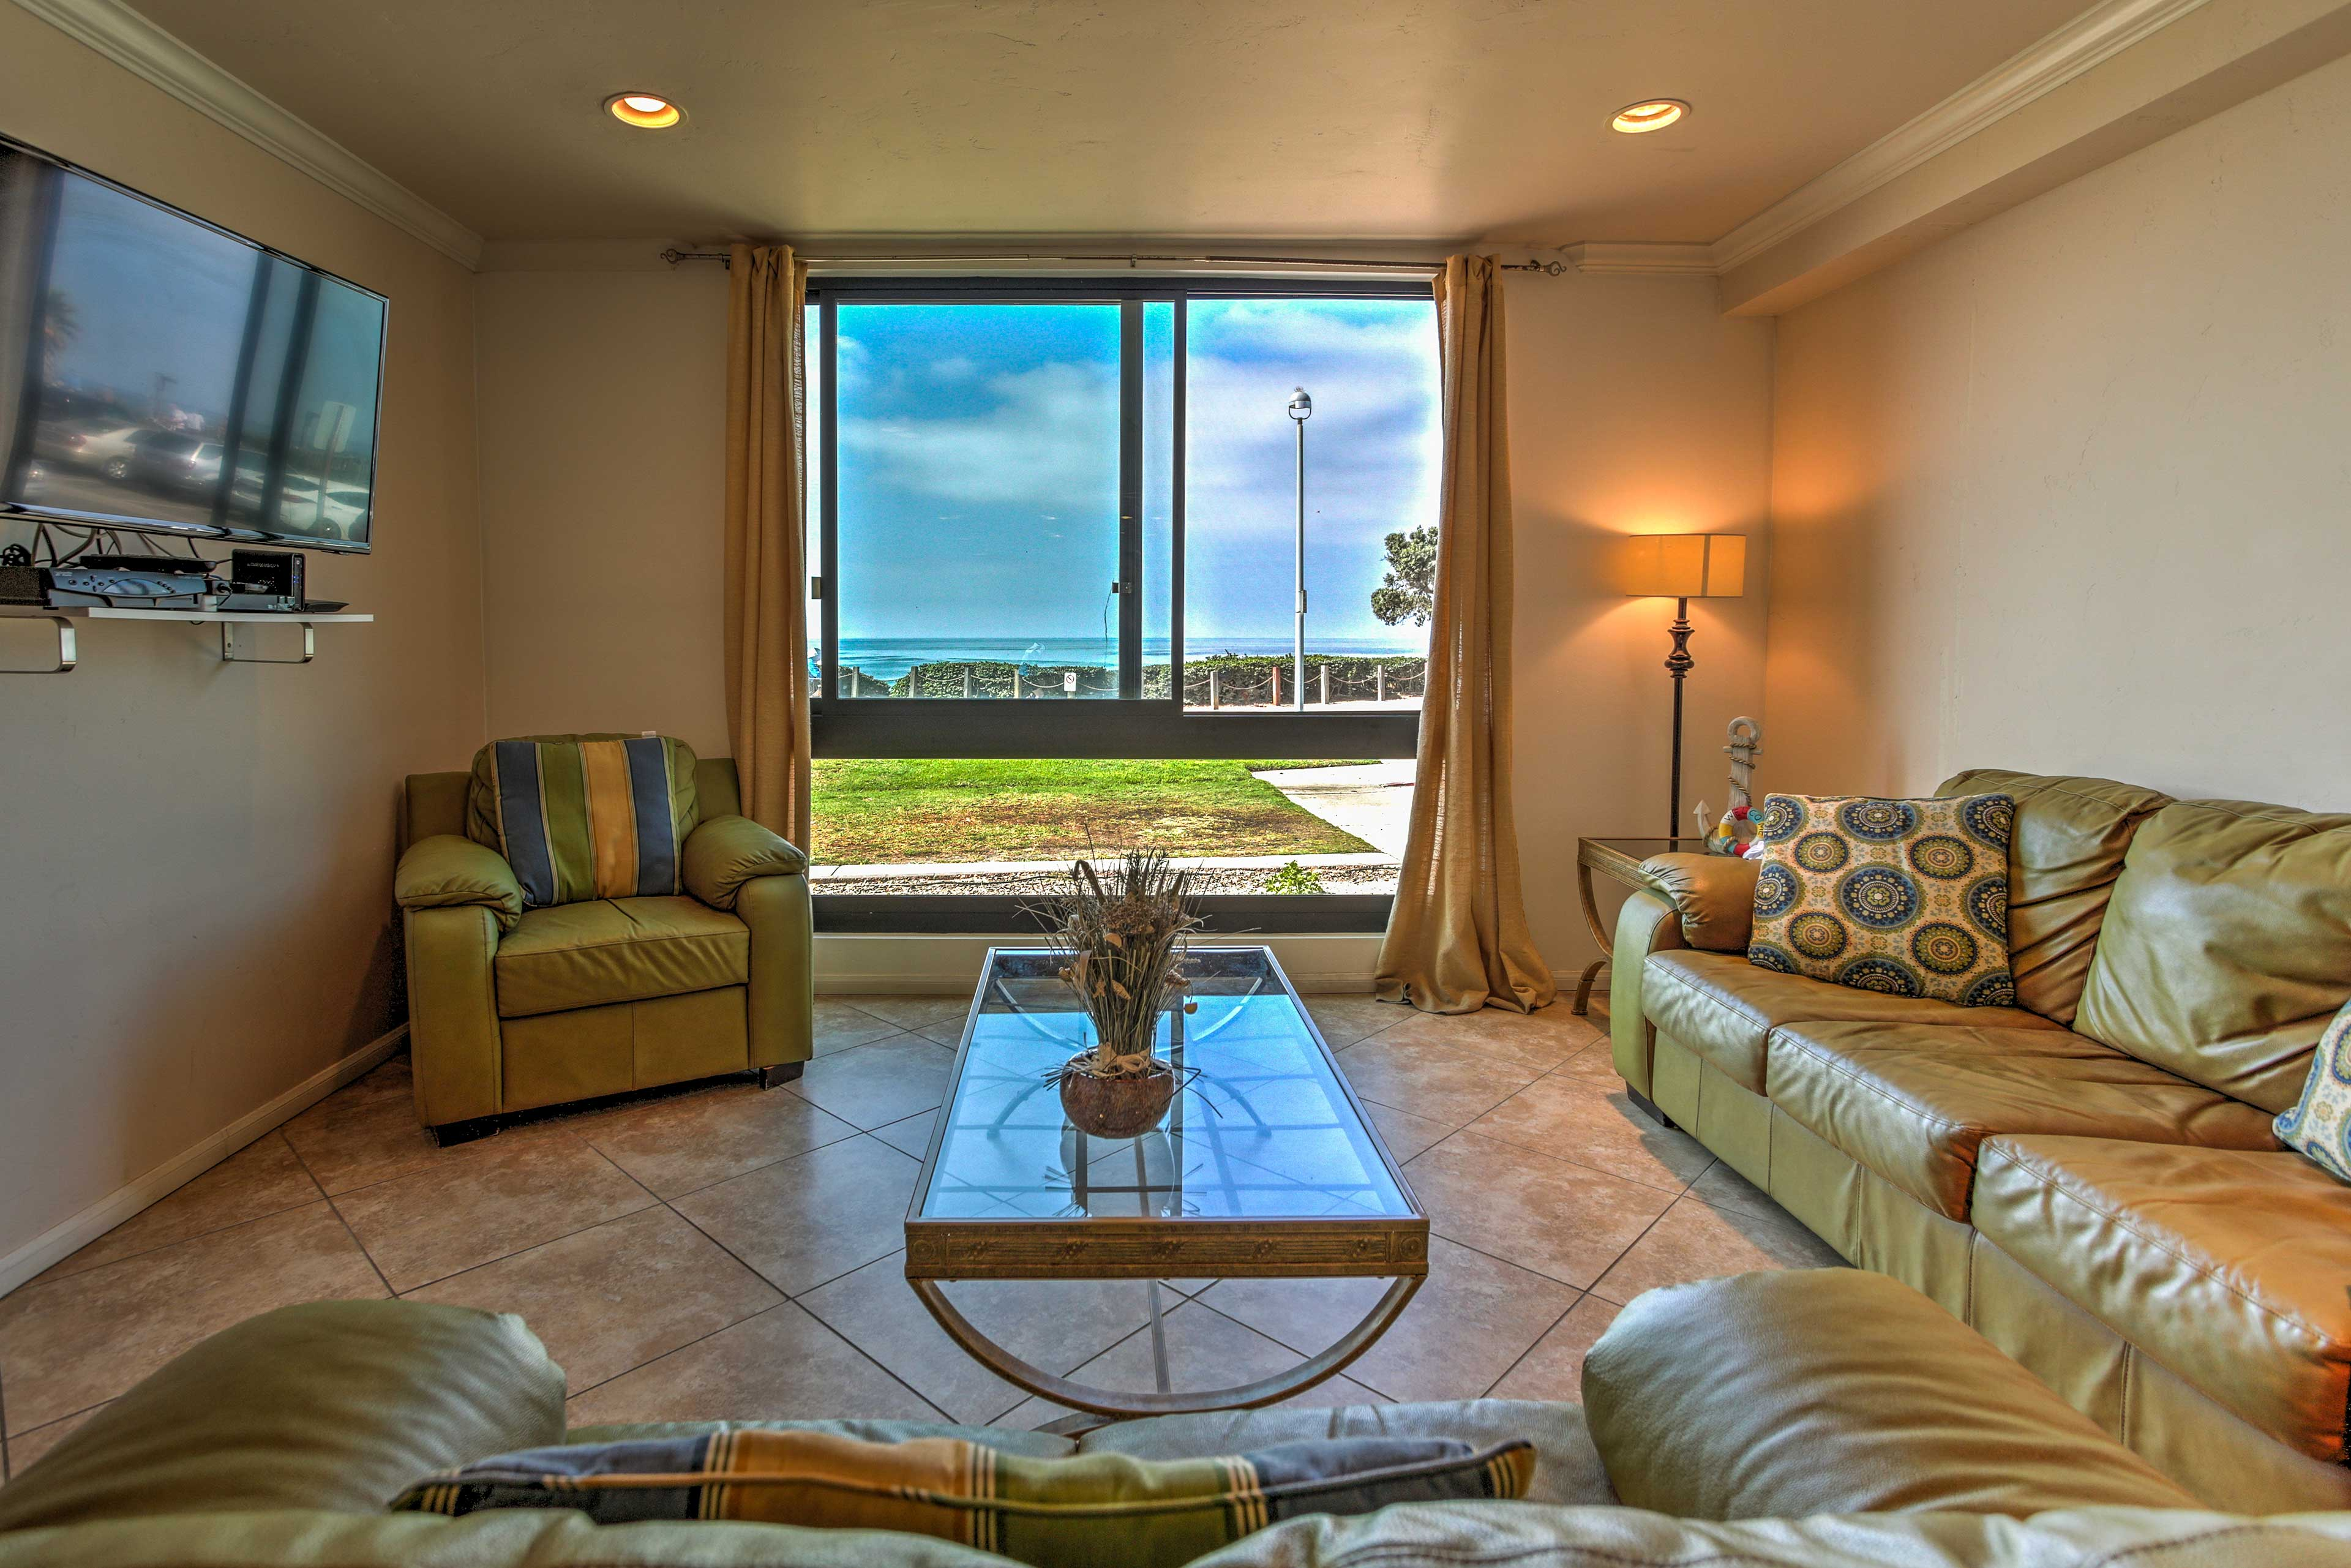 Experience San Diego in all its glory from this 1-bed vacation rental condo!